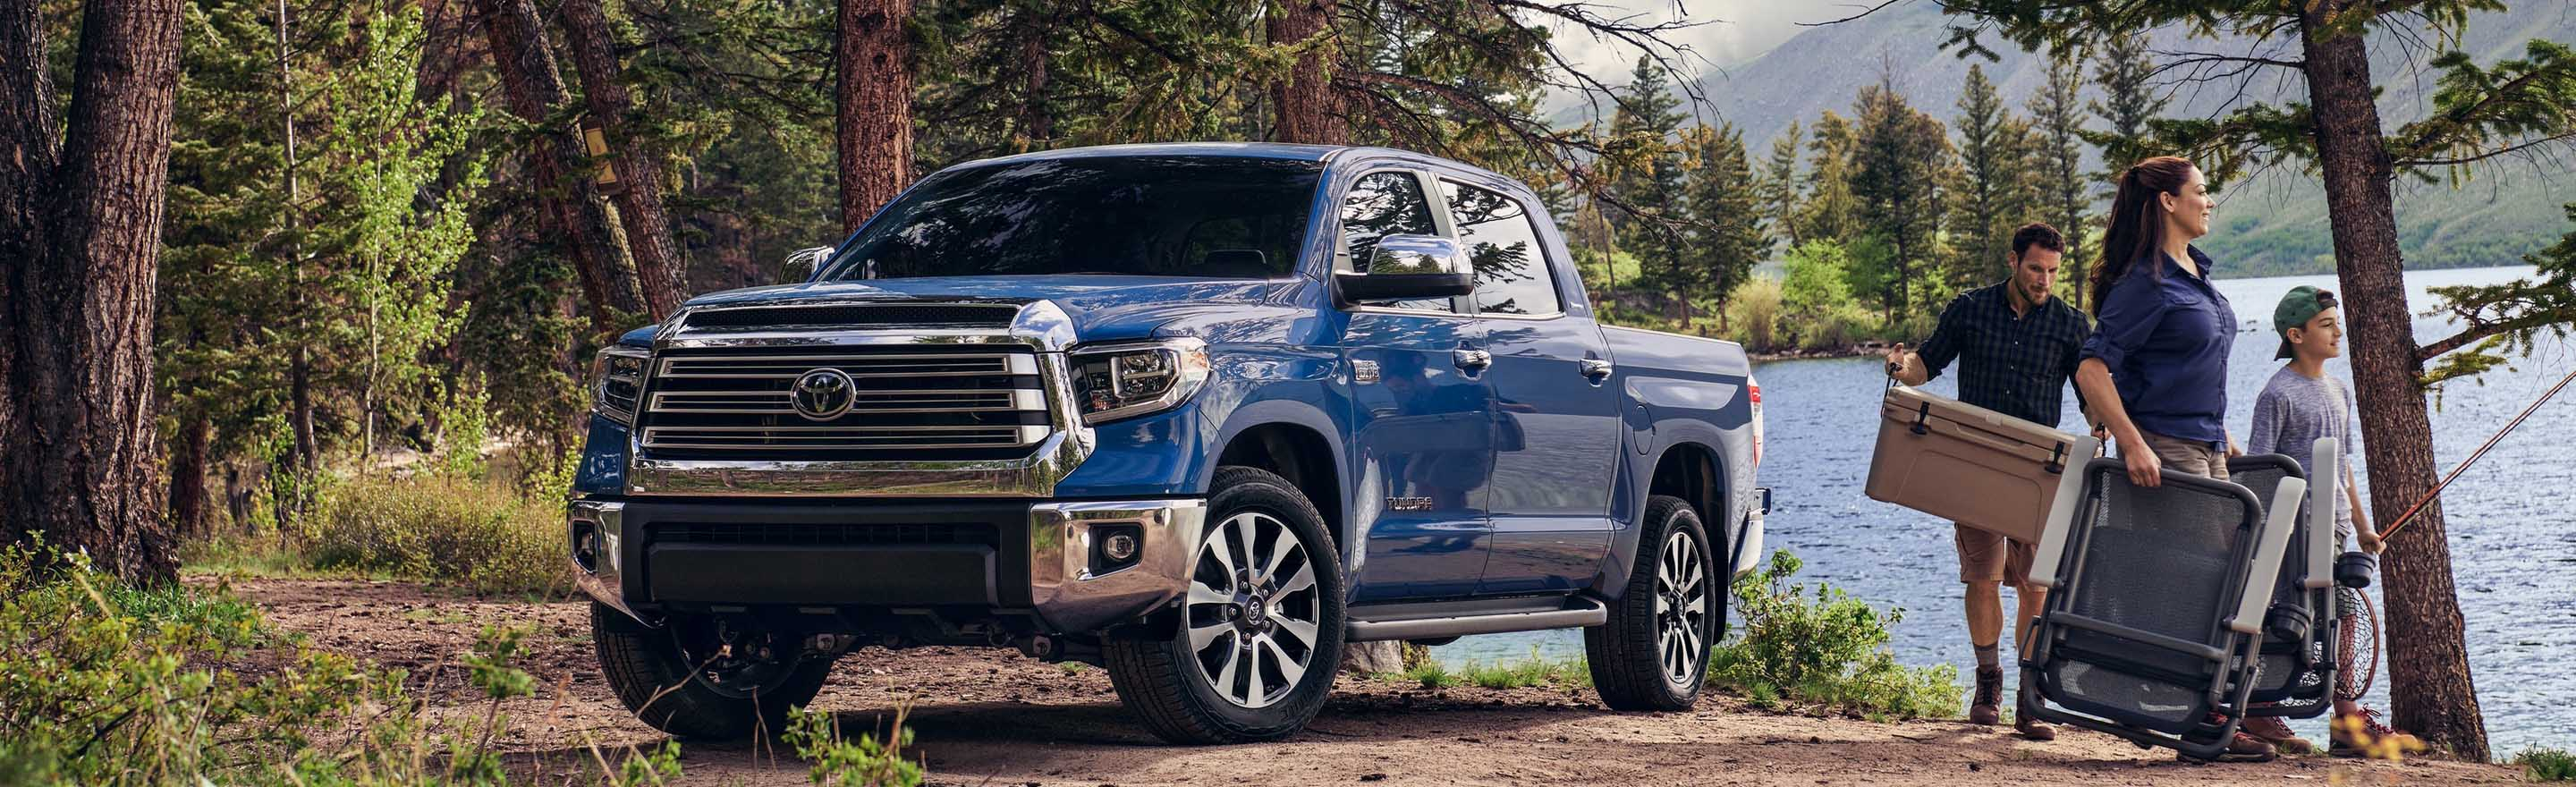 Discover The New 2020 Toyota Tundra Near Pittsburgh, Pennsylvania